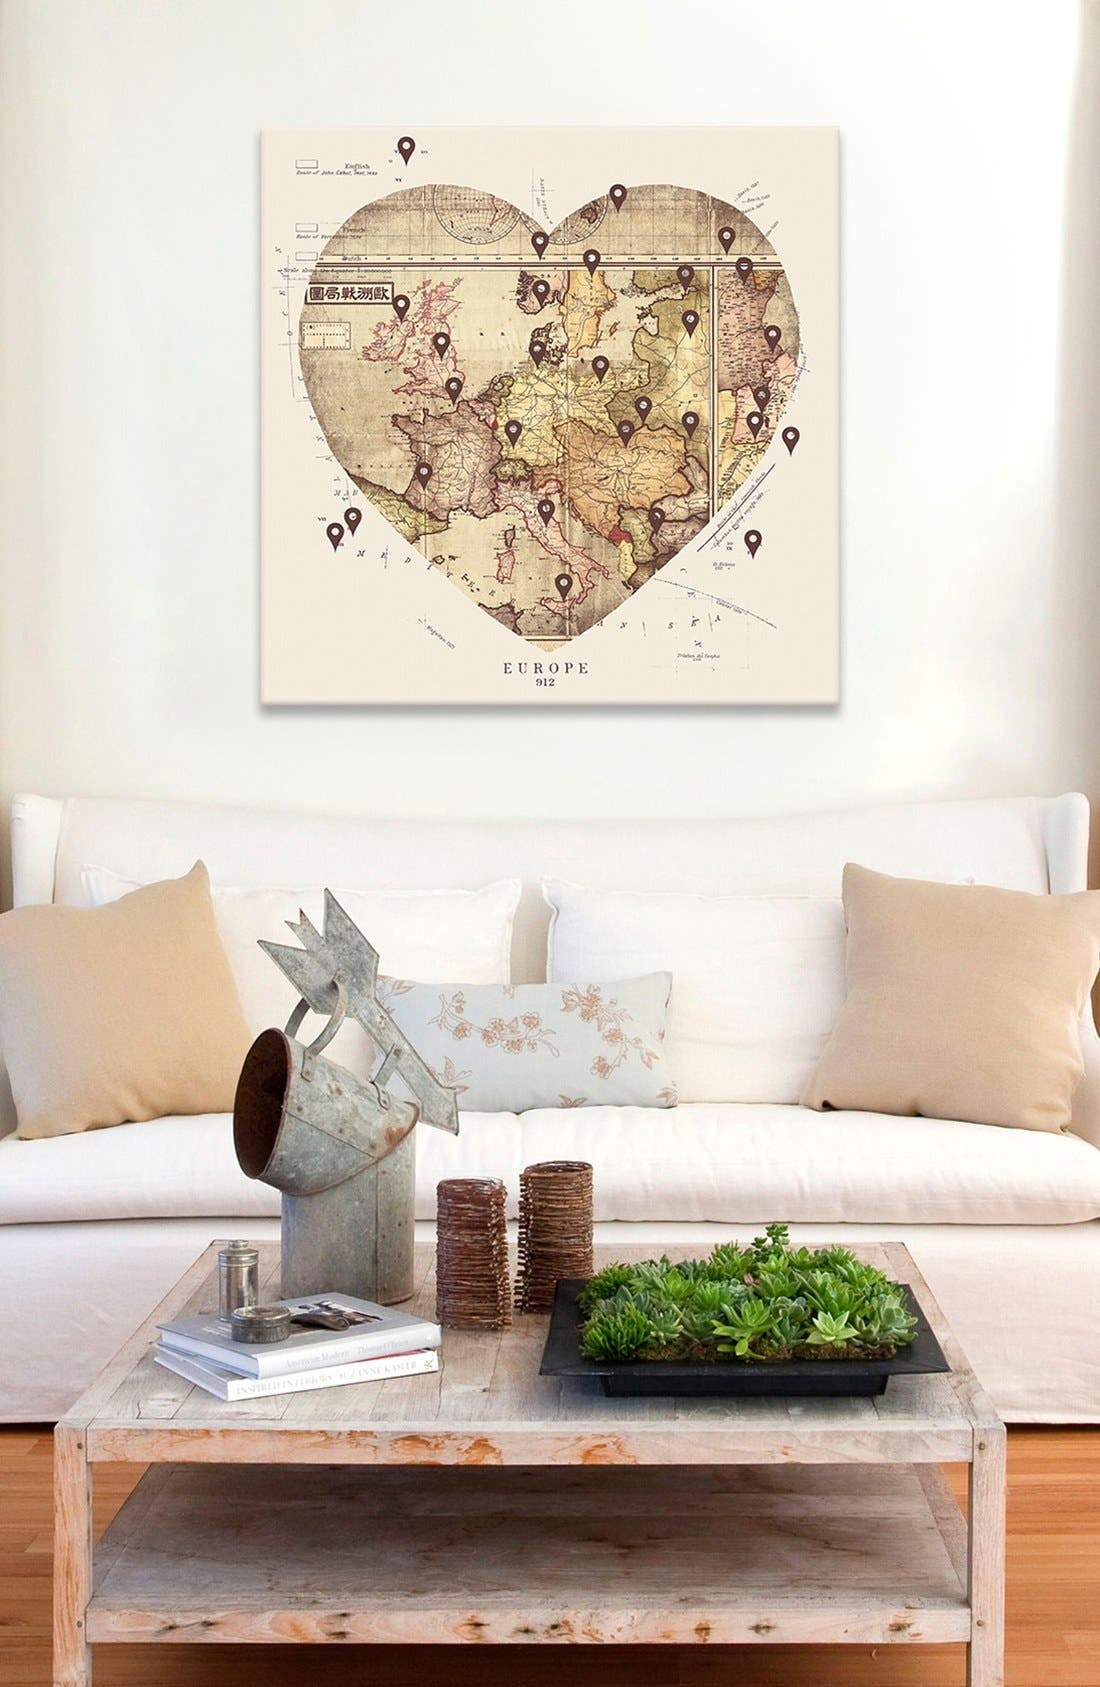 'Love to Travel' Giclée Print Canvas Art,                             Alternate thumbnail 2, color,                             Beige